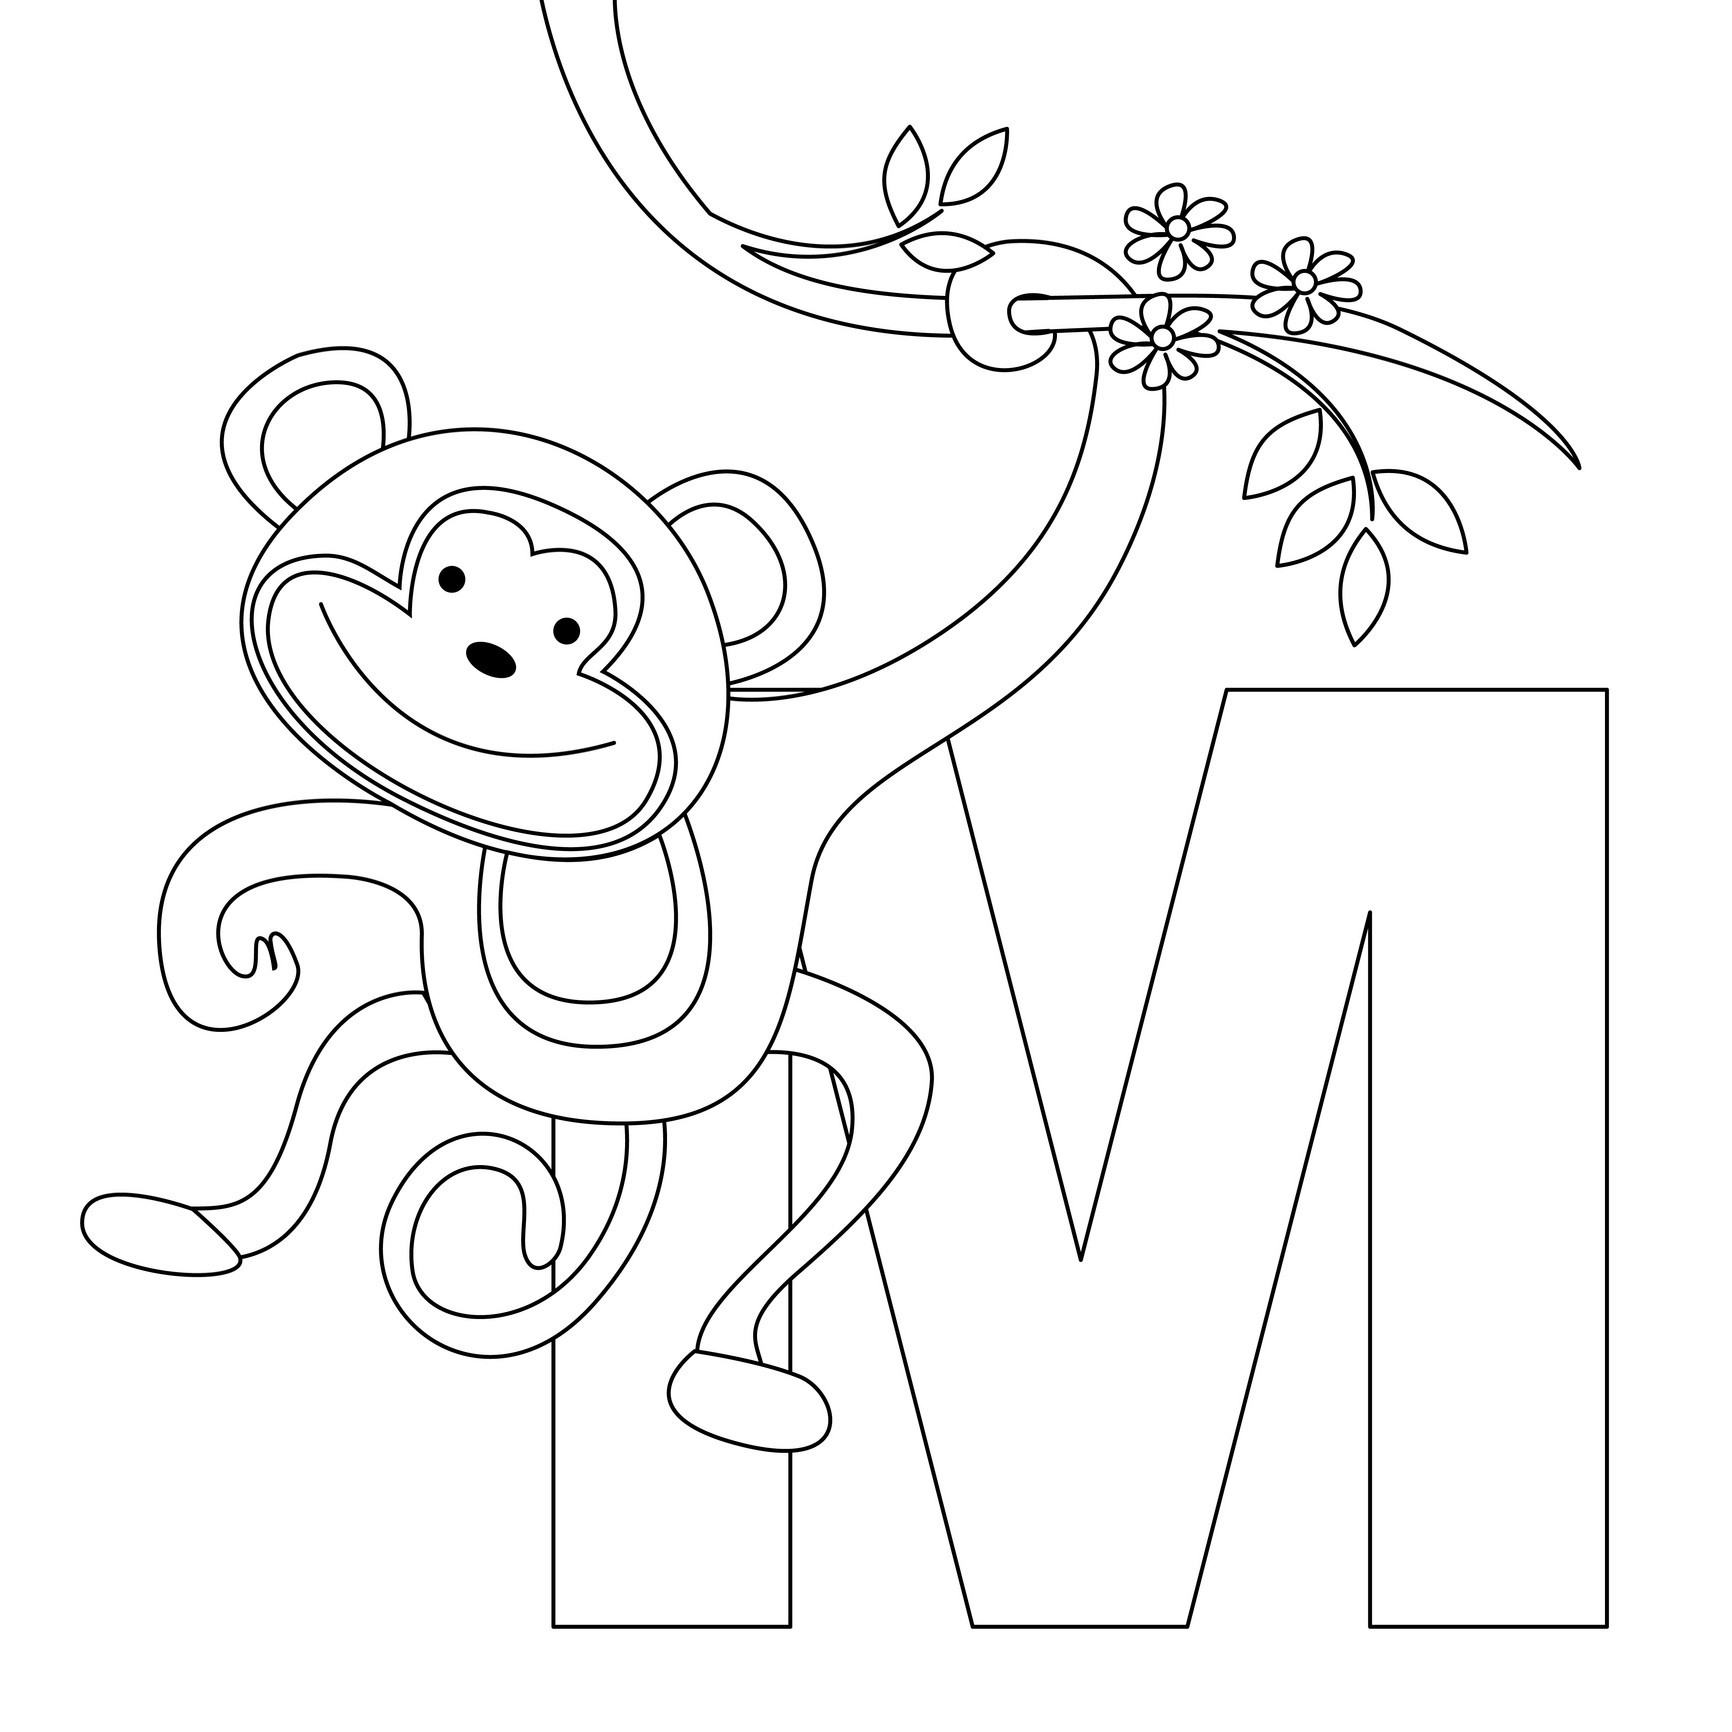 letter a coloring page fun coloring pages alphabet coloring pages a page letter coloring